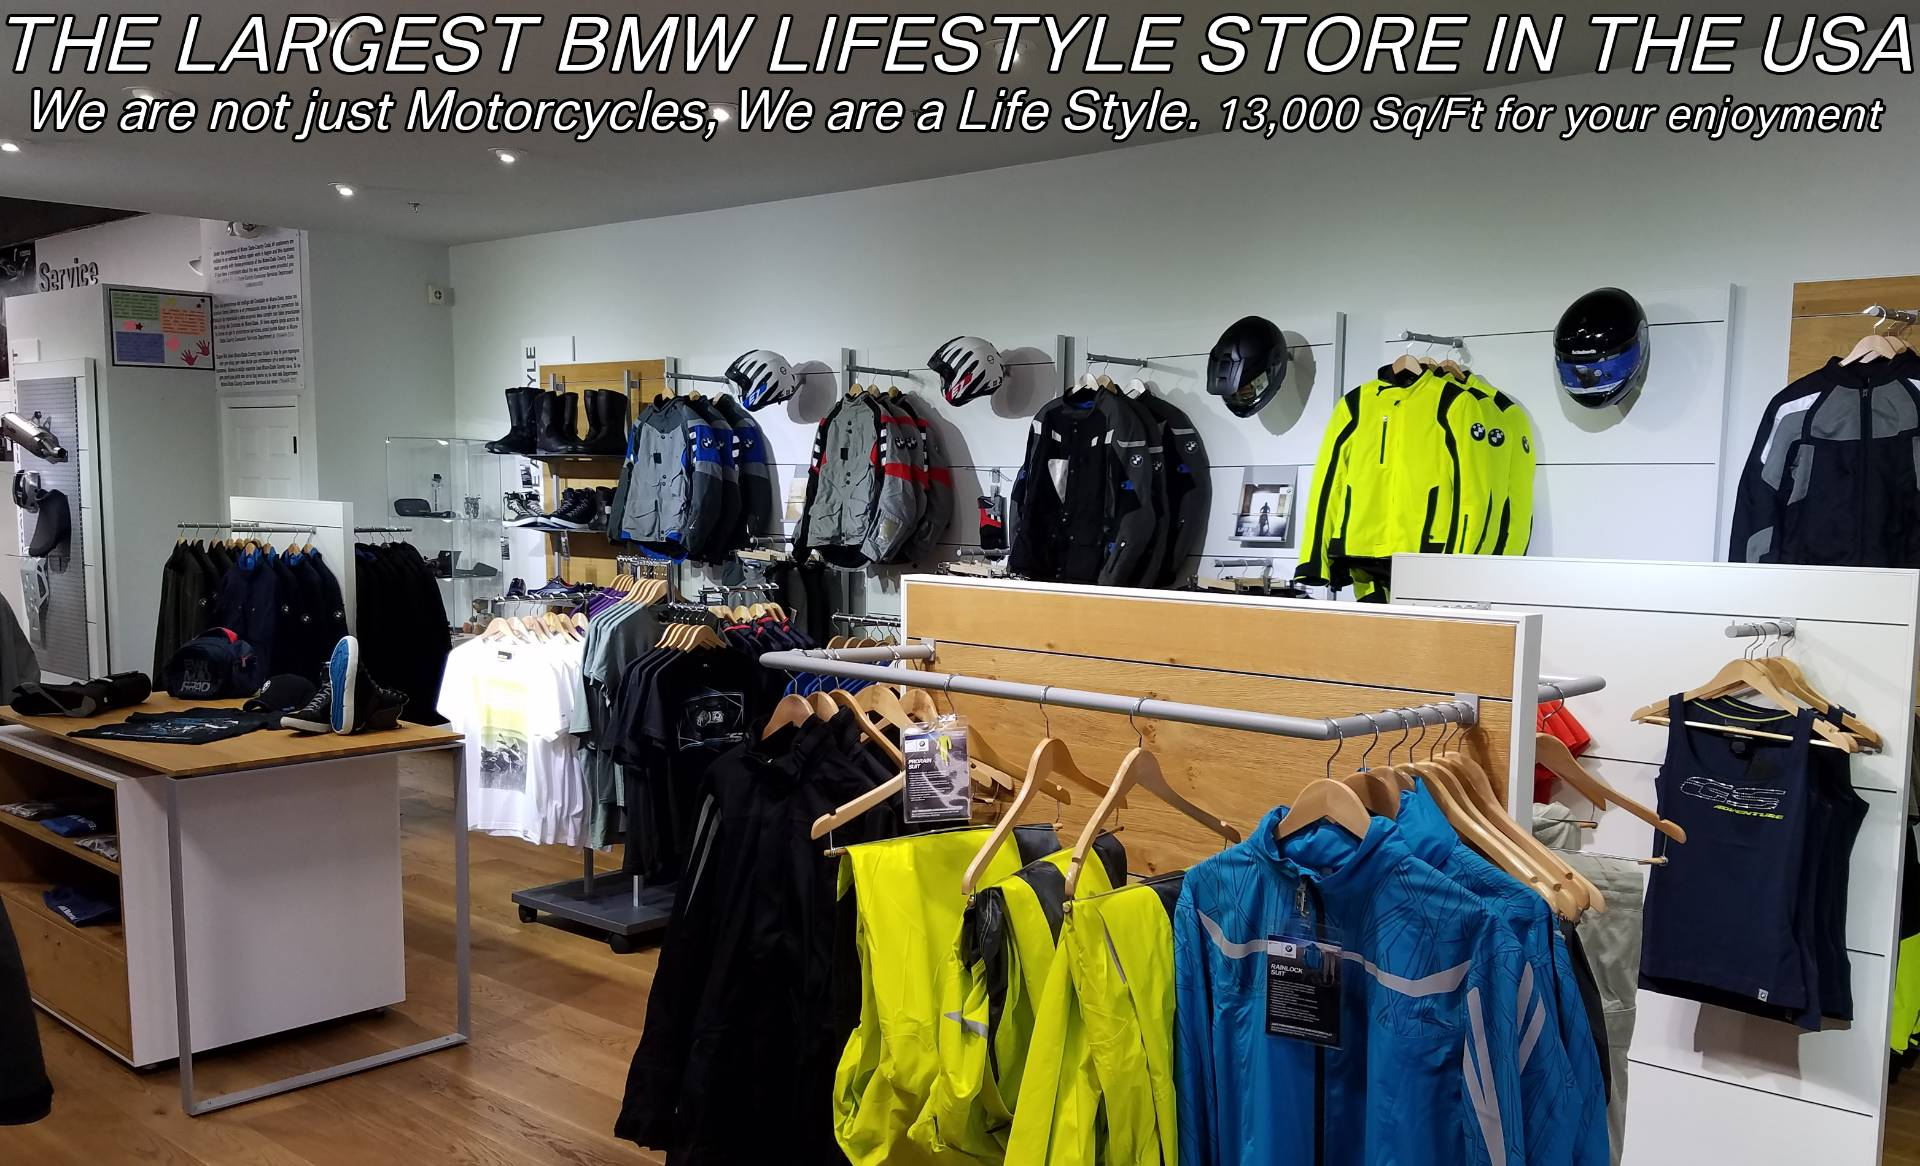 New 2019 BMW R 1250 GS for sale, New BMW for sale R 1250GS, New BMW Motorcycle R1250GS for sale, new BMW 1250GS, R1250GS, GS. BMW Motorcycles of Miami, Motorcycles of Miami, Motorcycles Miami, New Motorcycles, Used Motorcycles, pre-owned. #BMWMotorcyclesOfMiami #MotorcyclesOfMiami. - Photo 63